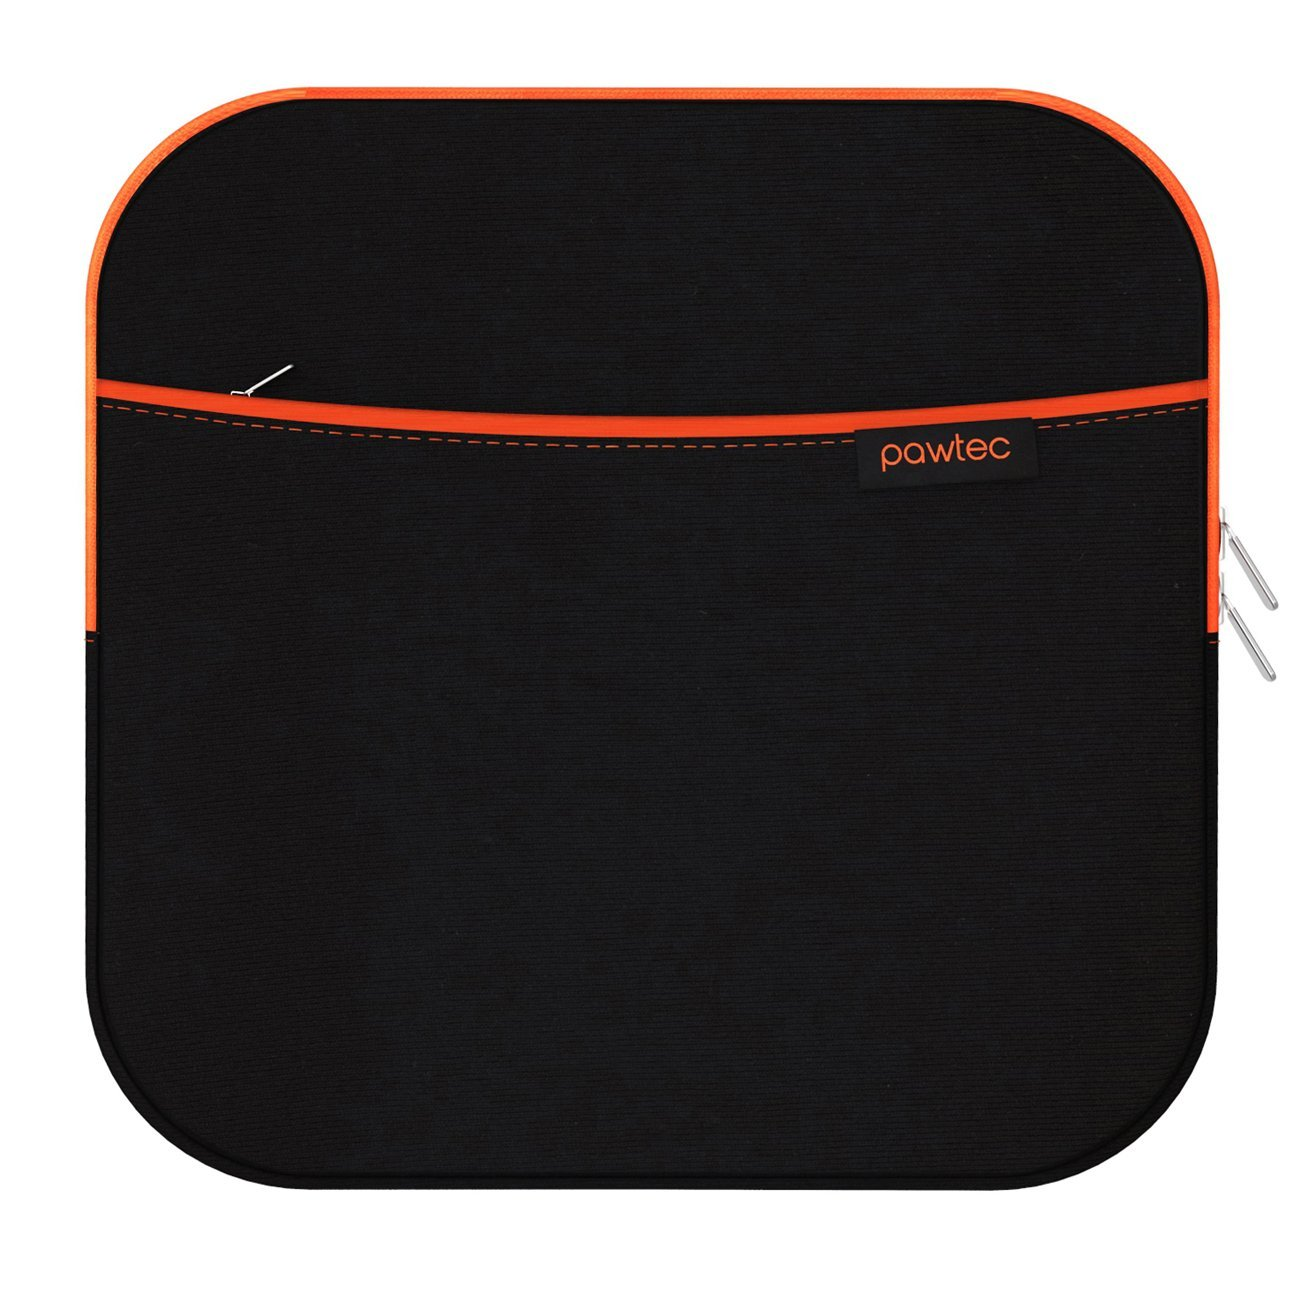 Pawtec External USB CD DVD Blu-Ray & Hard Drive Neoprene Protective Storage Carrying Sleeve Case With Extra Storage Pocket